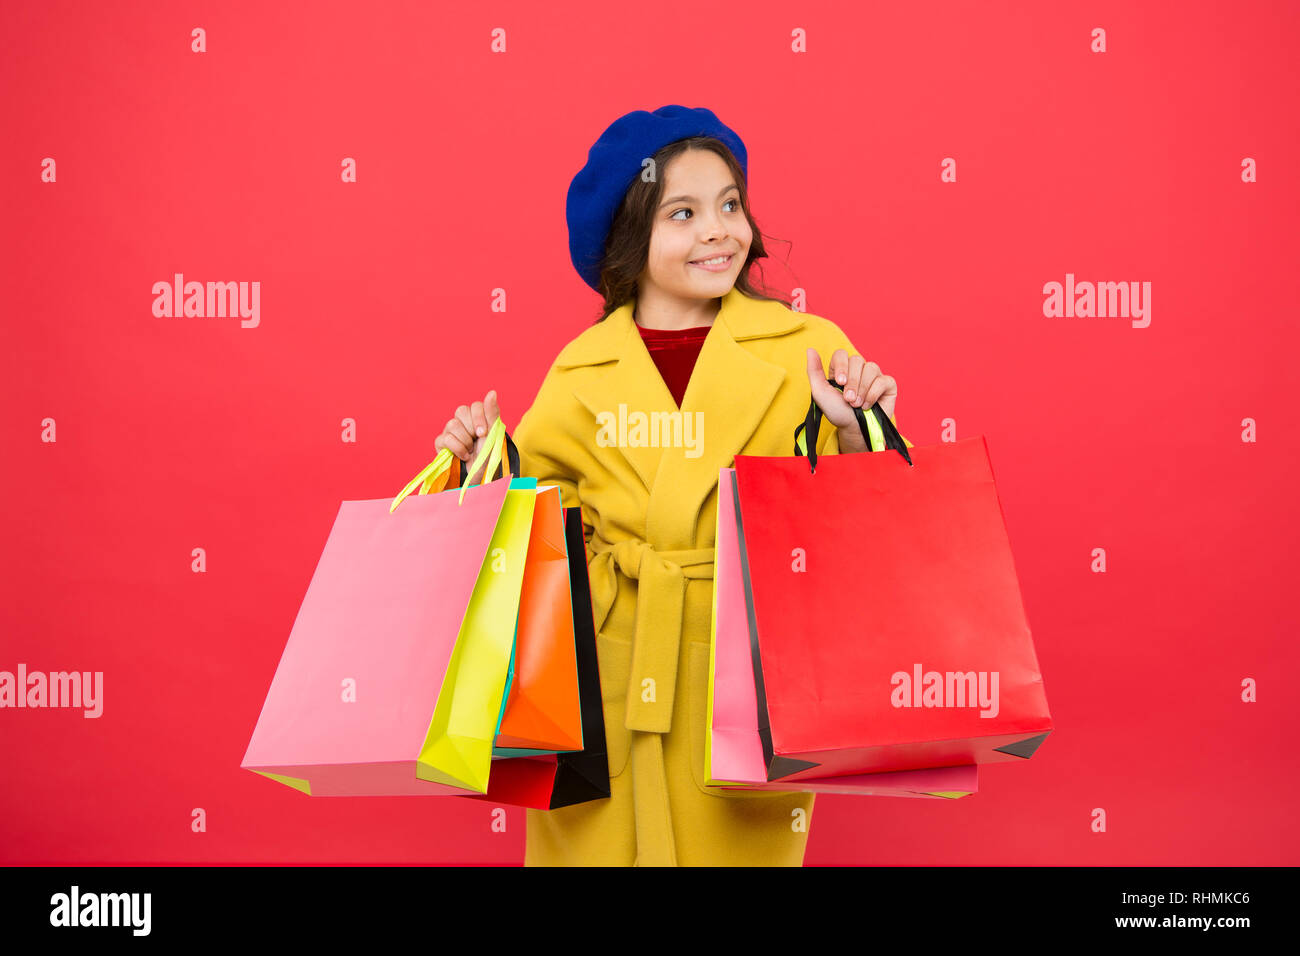 Obsessed with shopping. Girl cute kid hold shopping bags. Get discount shopping on birthday holiday. Nice purchase. Fashionista enjoy shopping. Customer satisfaction. Prime time buy spring clothing. - Stock Image